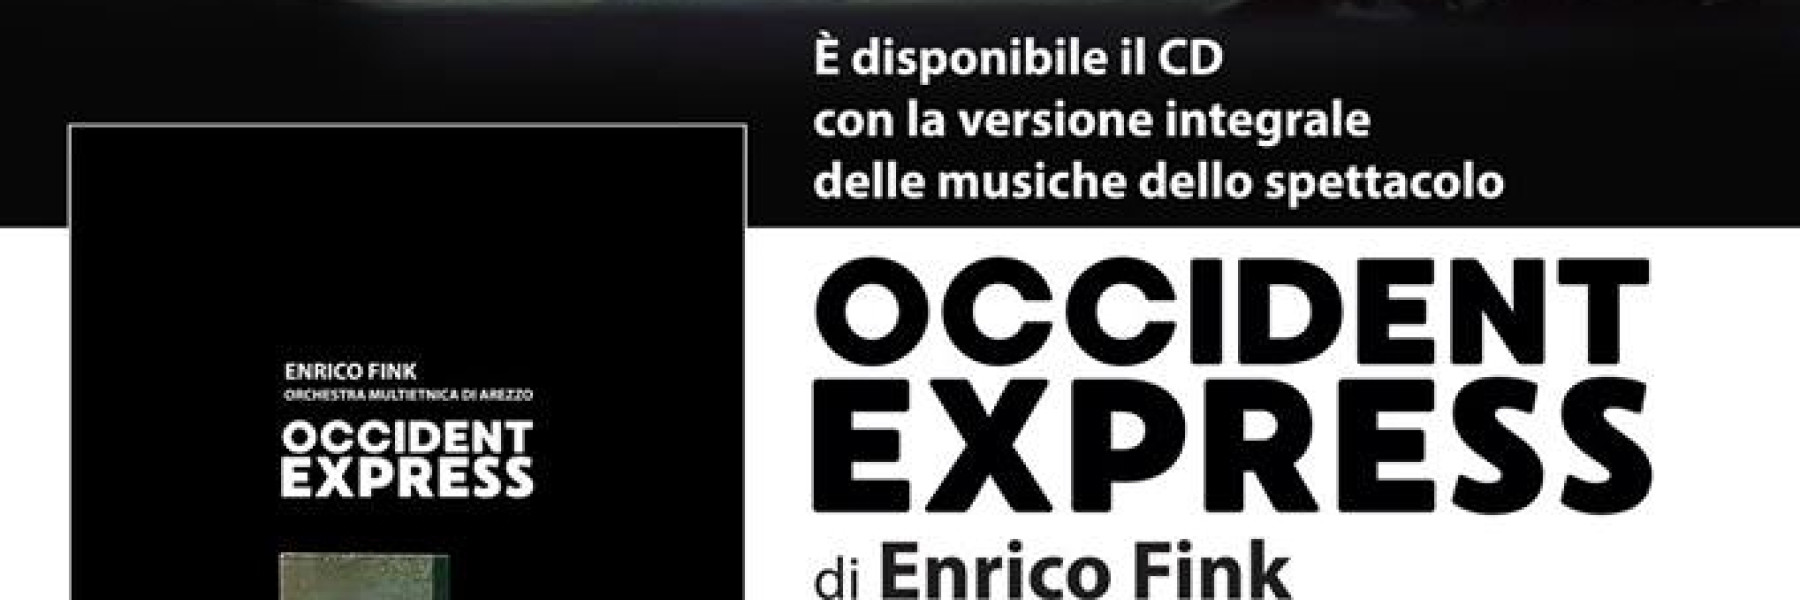 occident-express-cd-rid